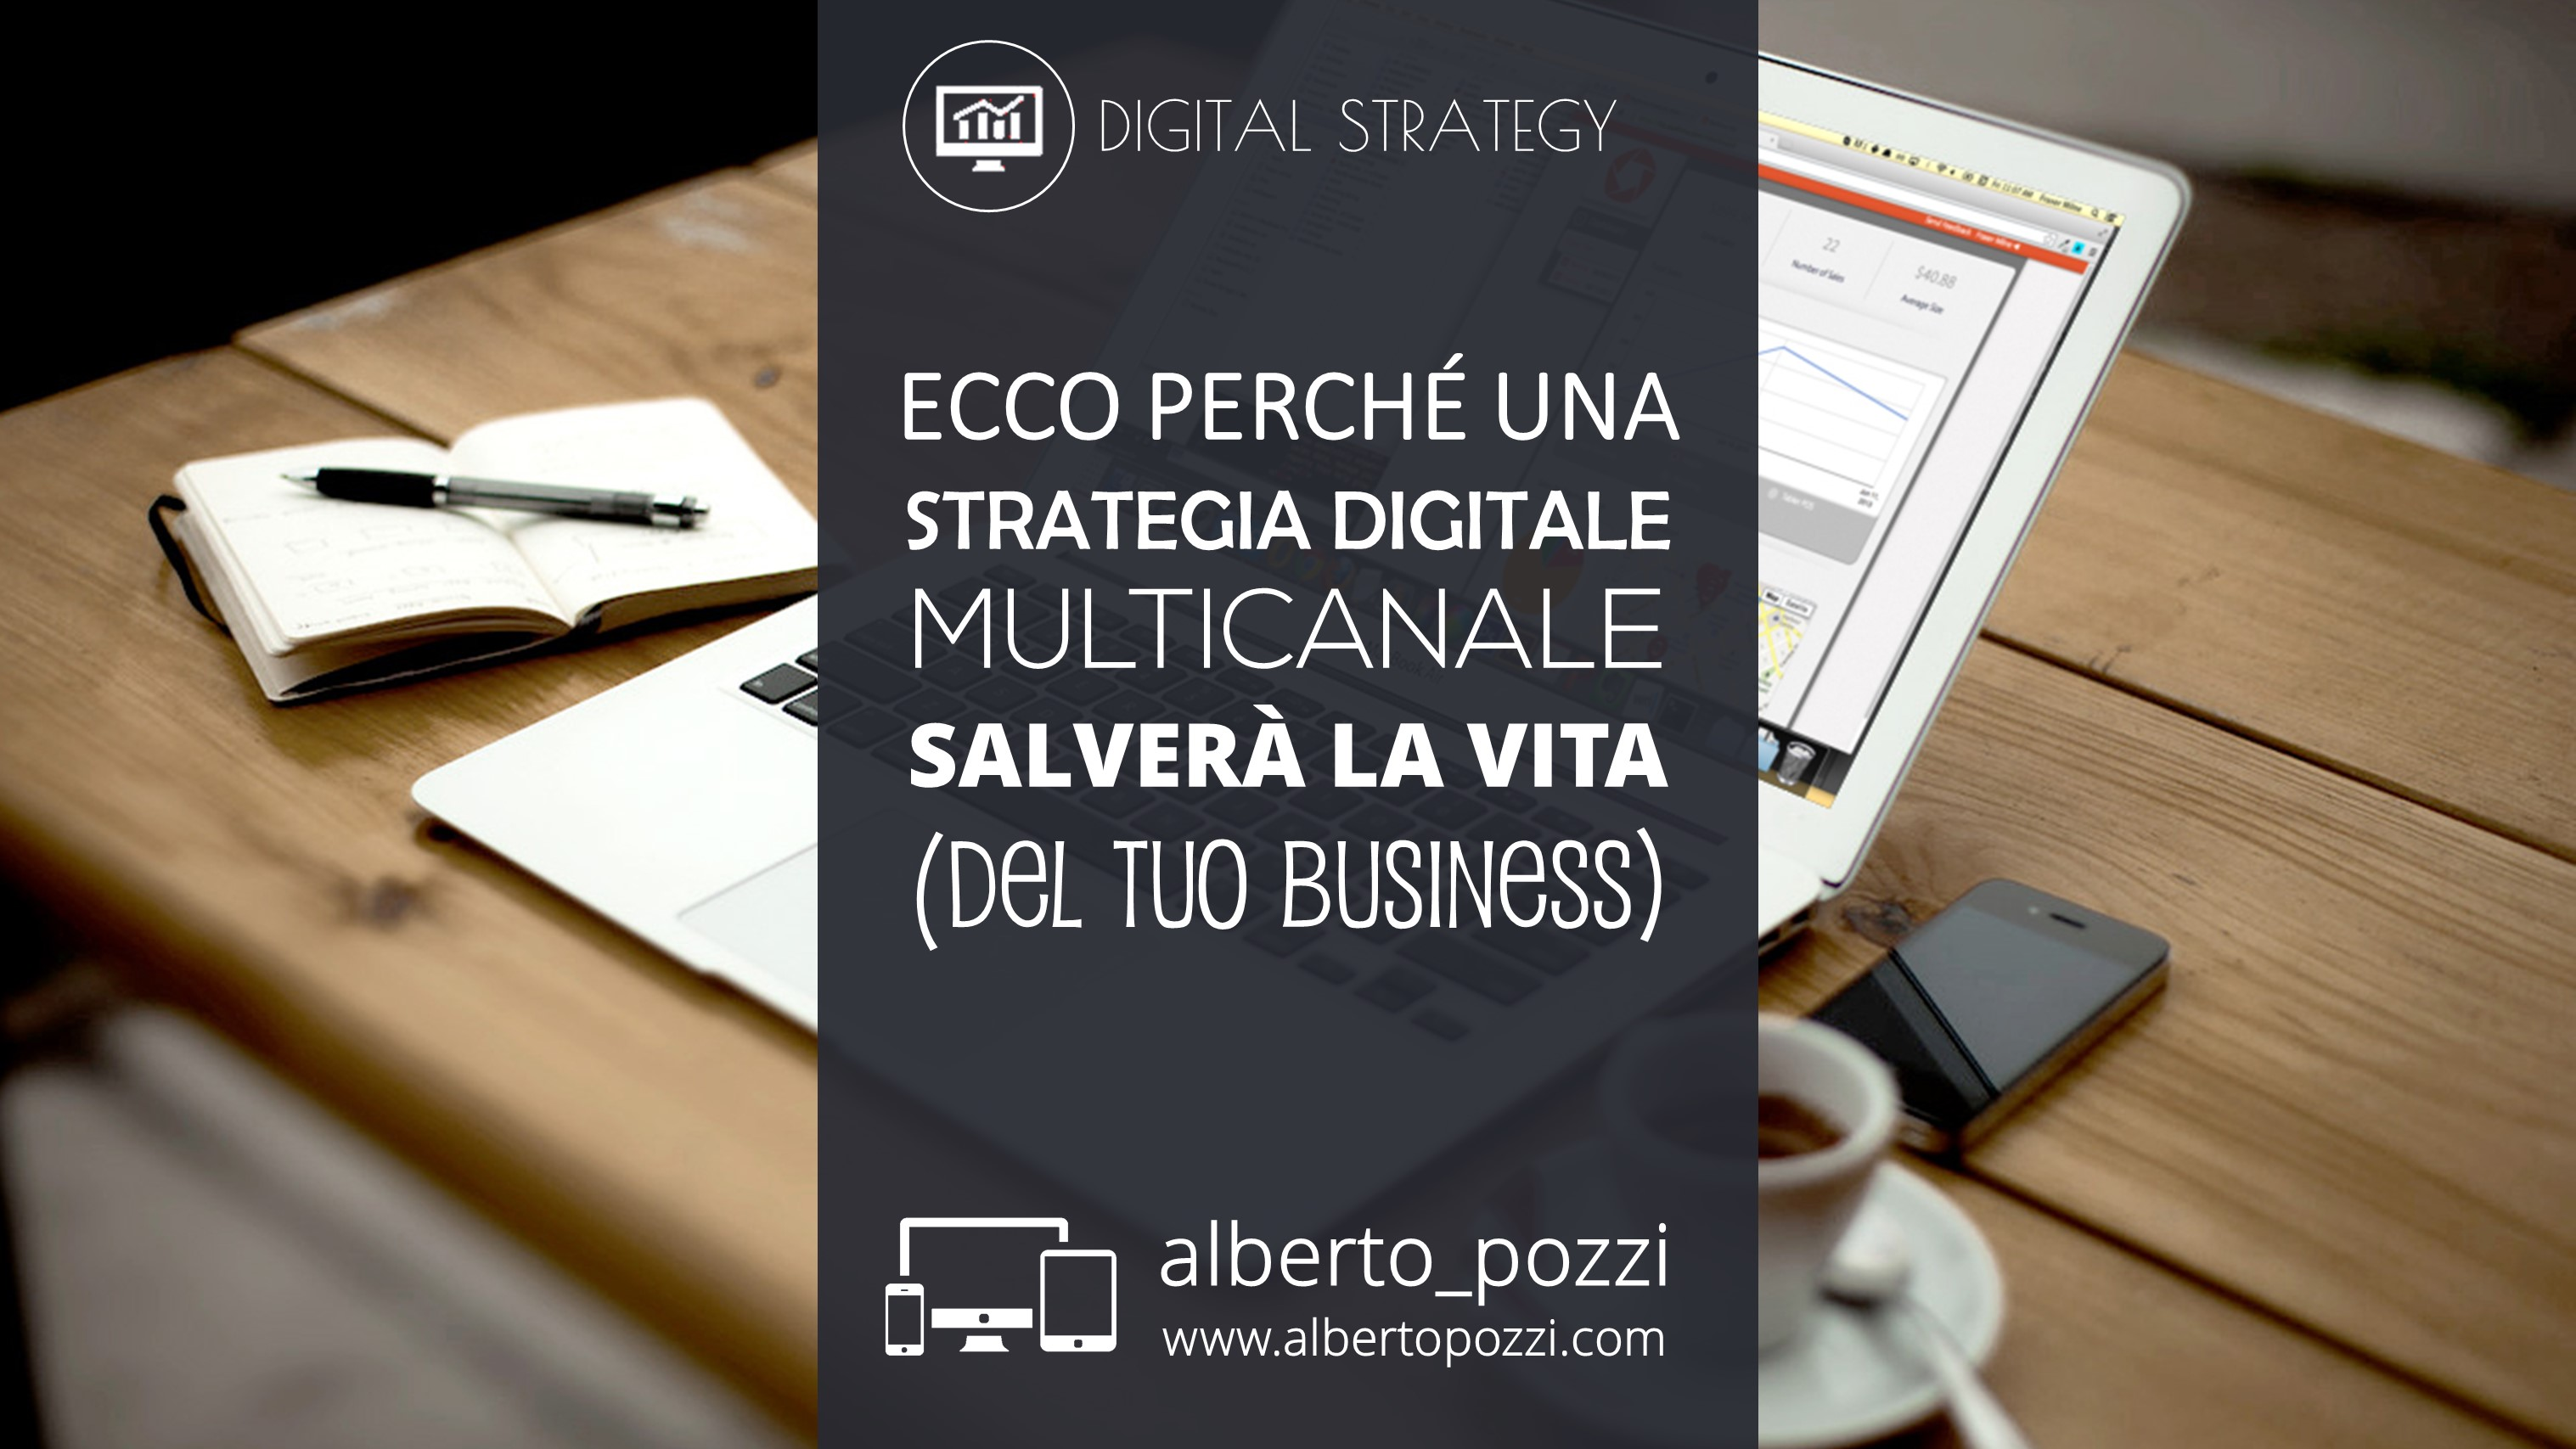 Perché una strategia digitale multicanale salverà la vita (del tuo business)